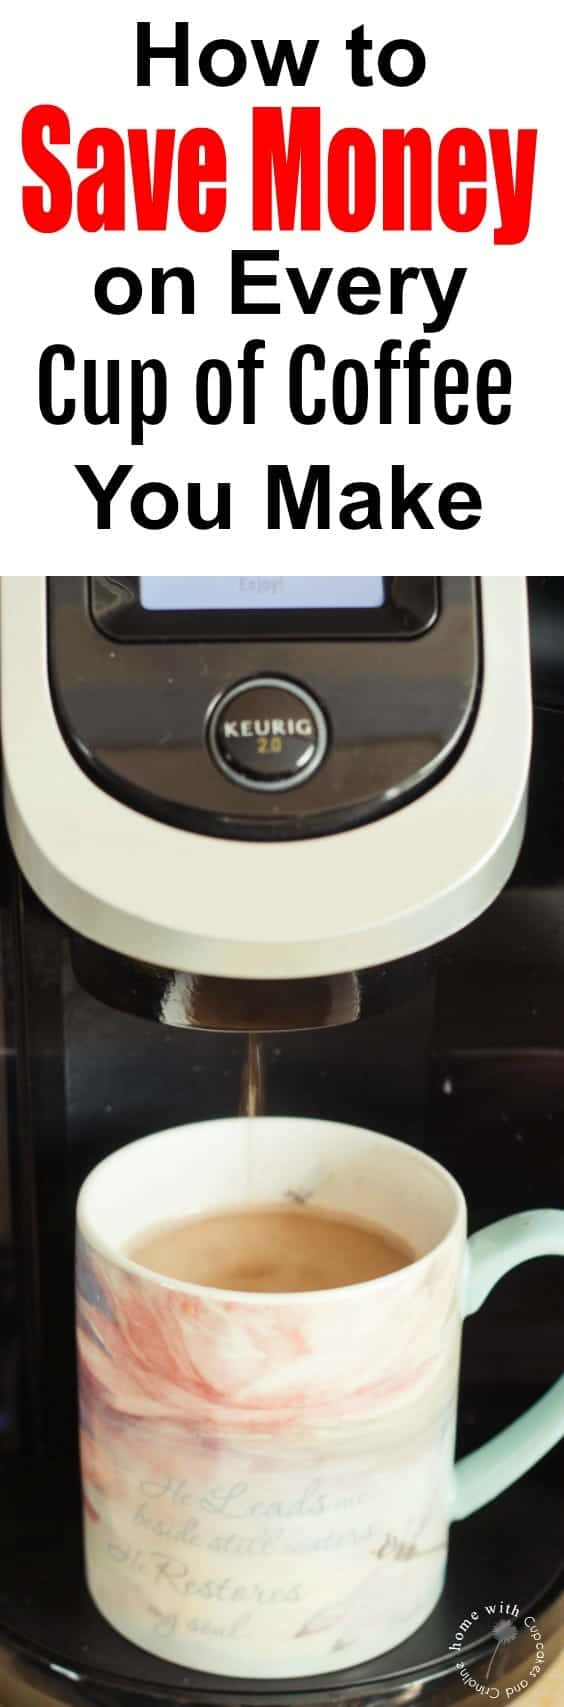 How to save money on every cup of coffee you make with this one simple change.